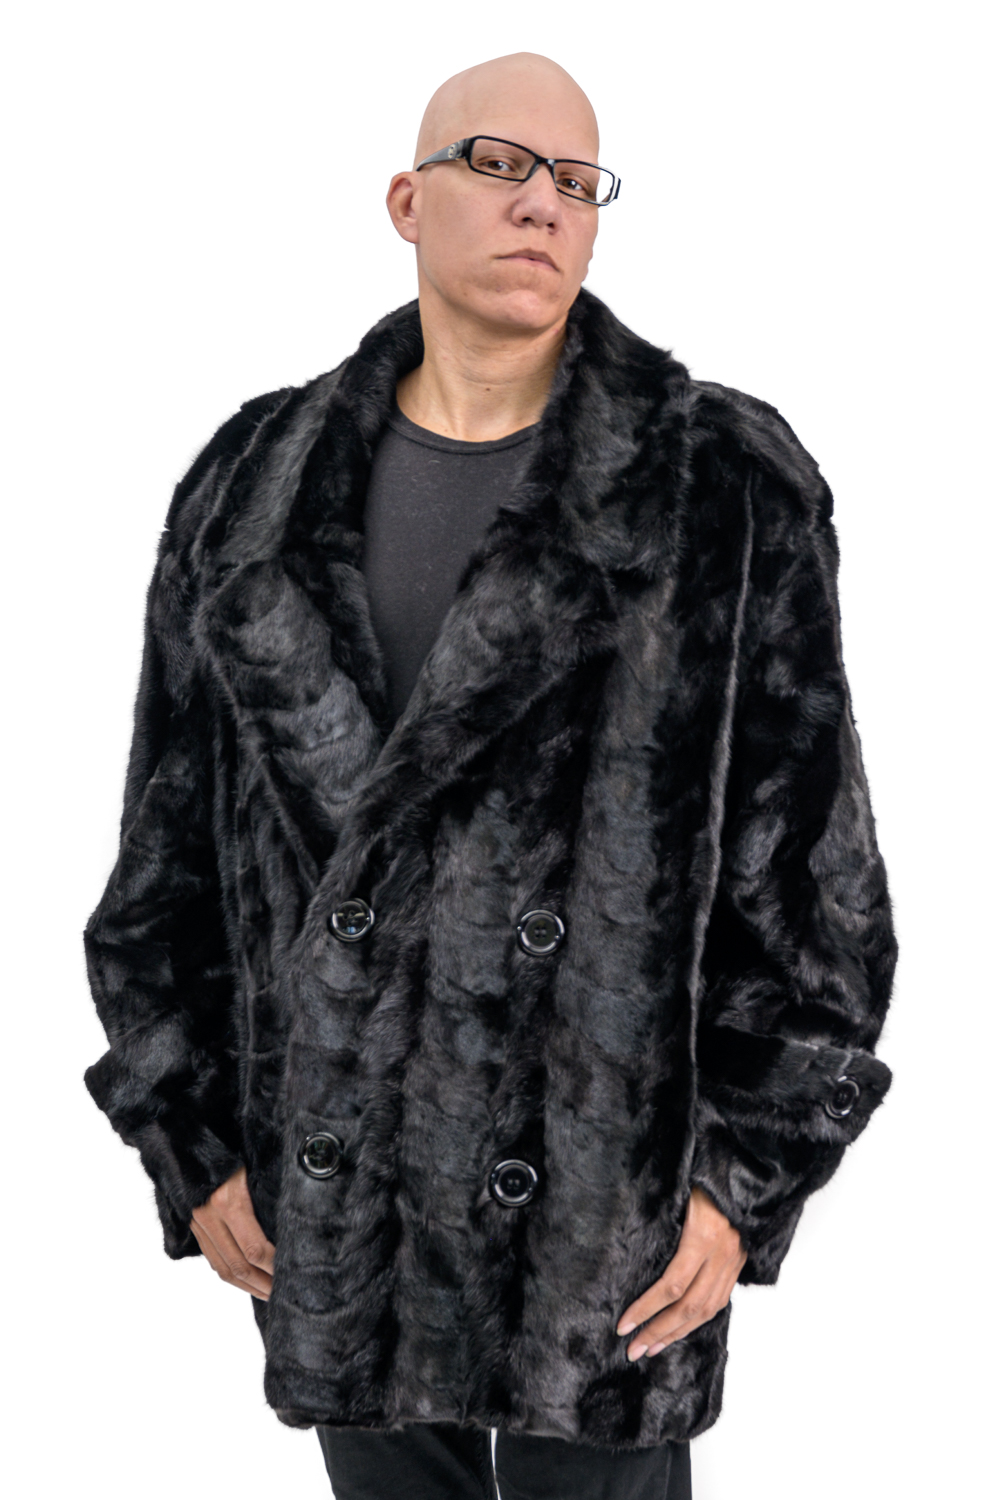 M5 5 Mans Mink Paws Fur Carcoat with Fox